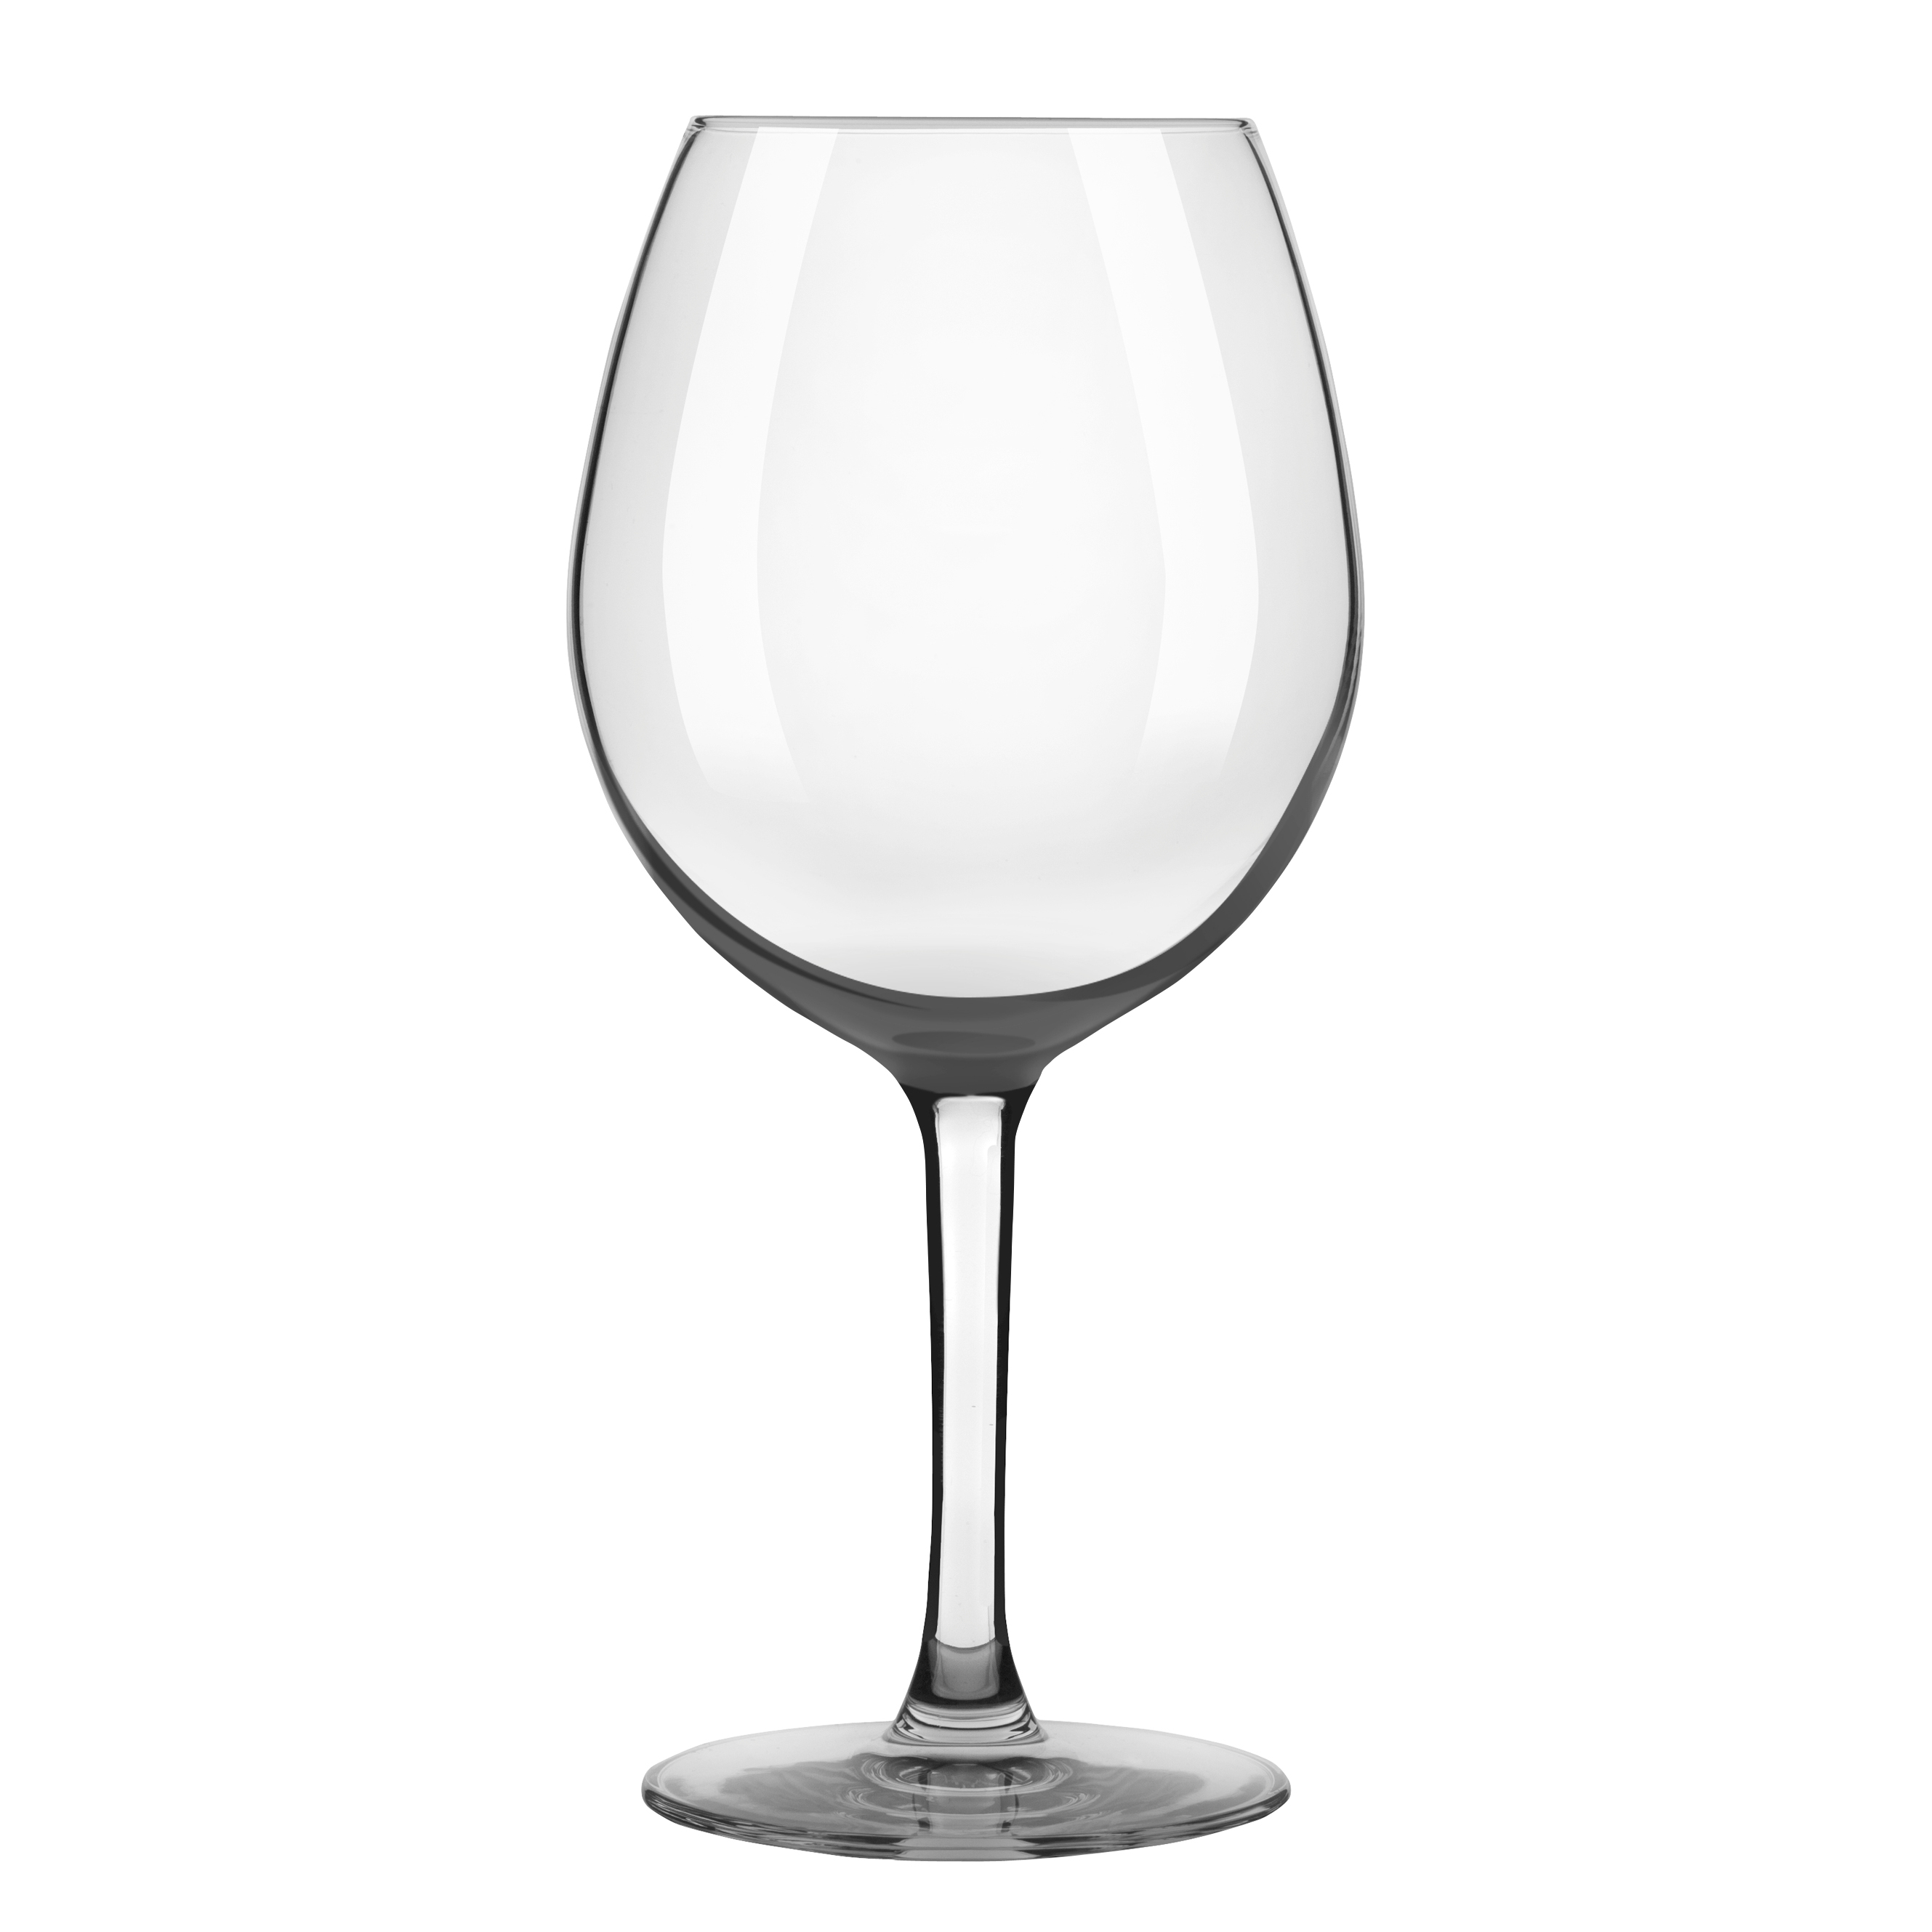 Libbey Glass 9154 glass, wine